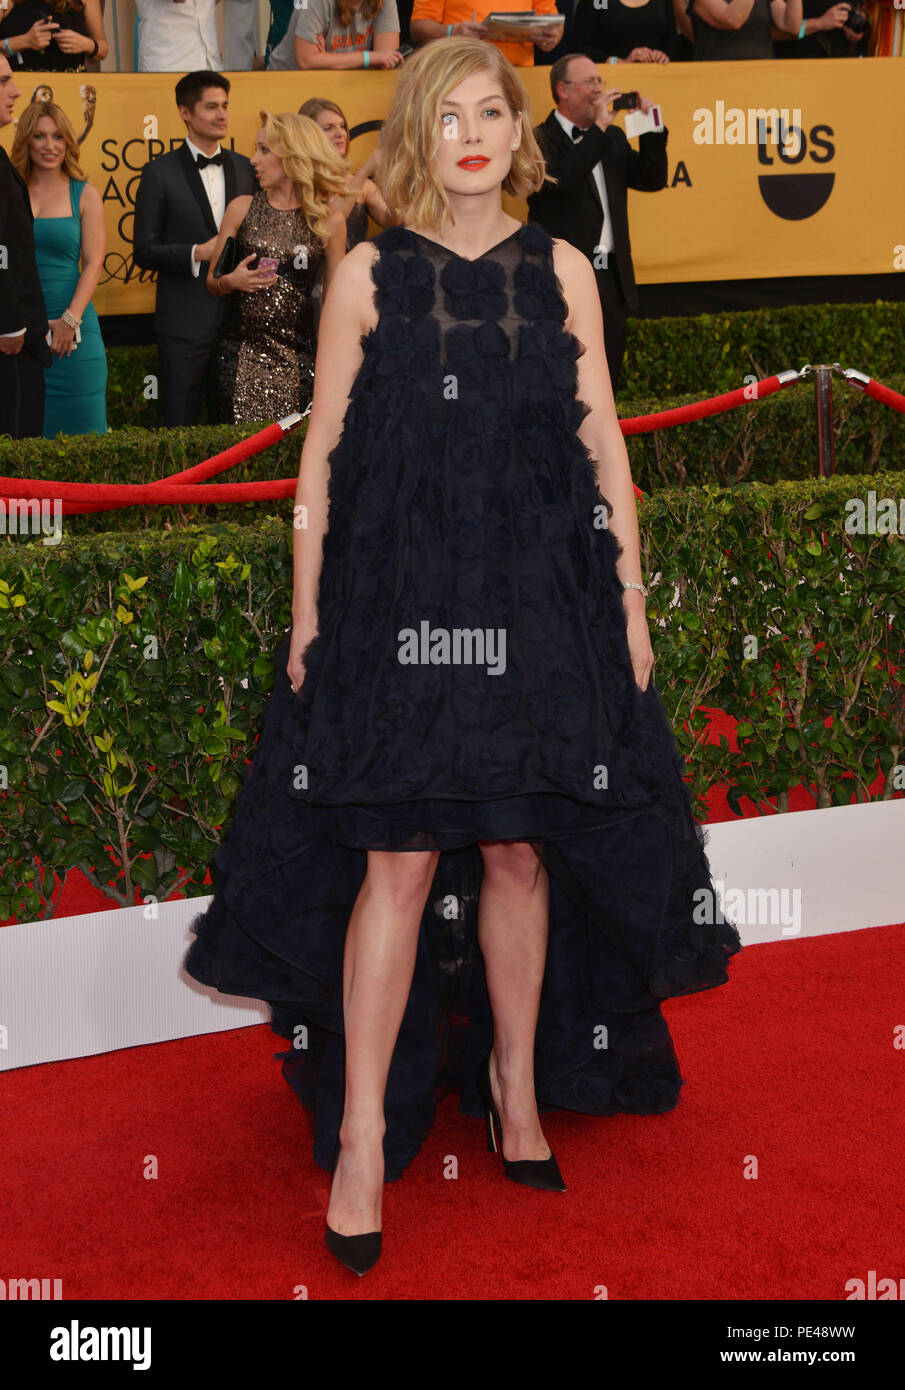 Rosamund Pike 276 at the 21Th SAG Awards 2015 at the Shrine Auditorium in Los Angeles. January 25, 2015.Rosamund Pike 276  Event in Hollywood Life - California, Red Carpet Event, USA, Film Industry, Celebrities, Photography, Bestof, Arts Culture and Entertainment, Topix Celebrities fashion, Best of, Hollywood Life, Event in Hollywood Life - California, Red Carpet and backstage, movie celebrities, TV celebrities, Music celebrities, Topix, Bestof, Arts Culture and Entertainment, vertical, one person, Photography,   Fashion, full length, 2015 inquiry tsuni@Gamma-USA.com , Credit Tsuni / USA, - Stock Image